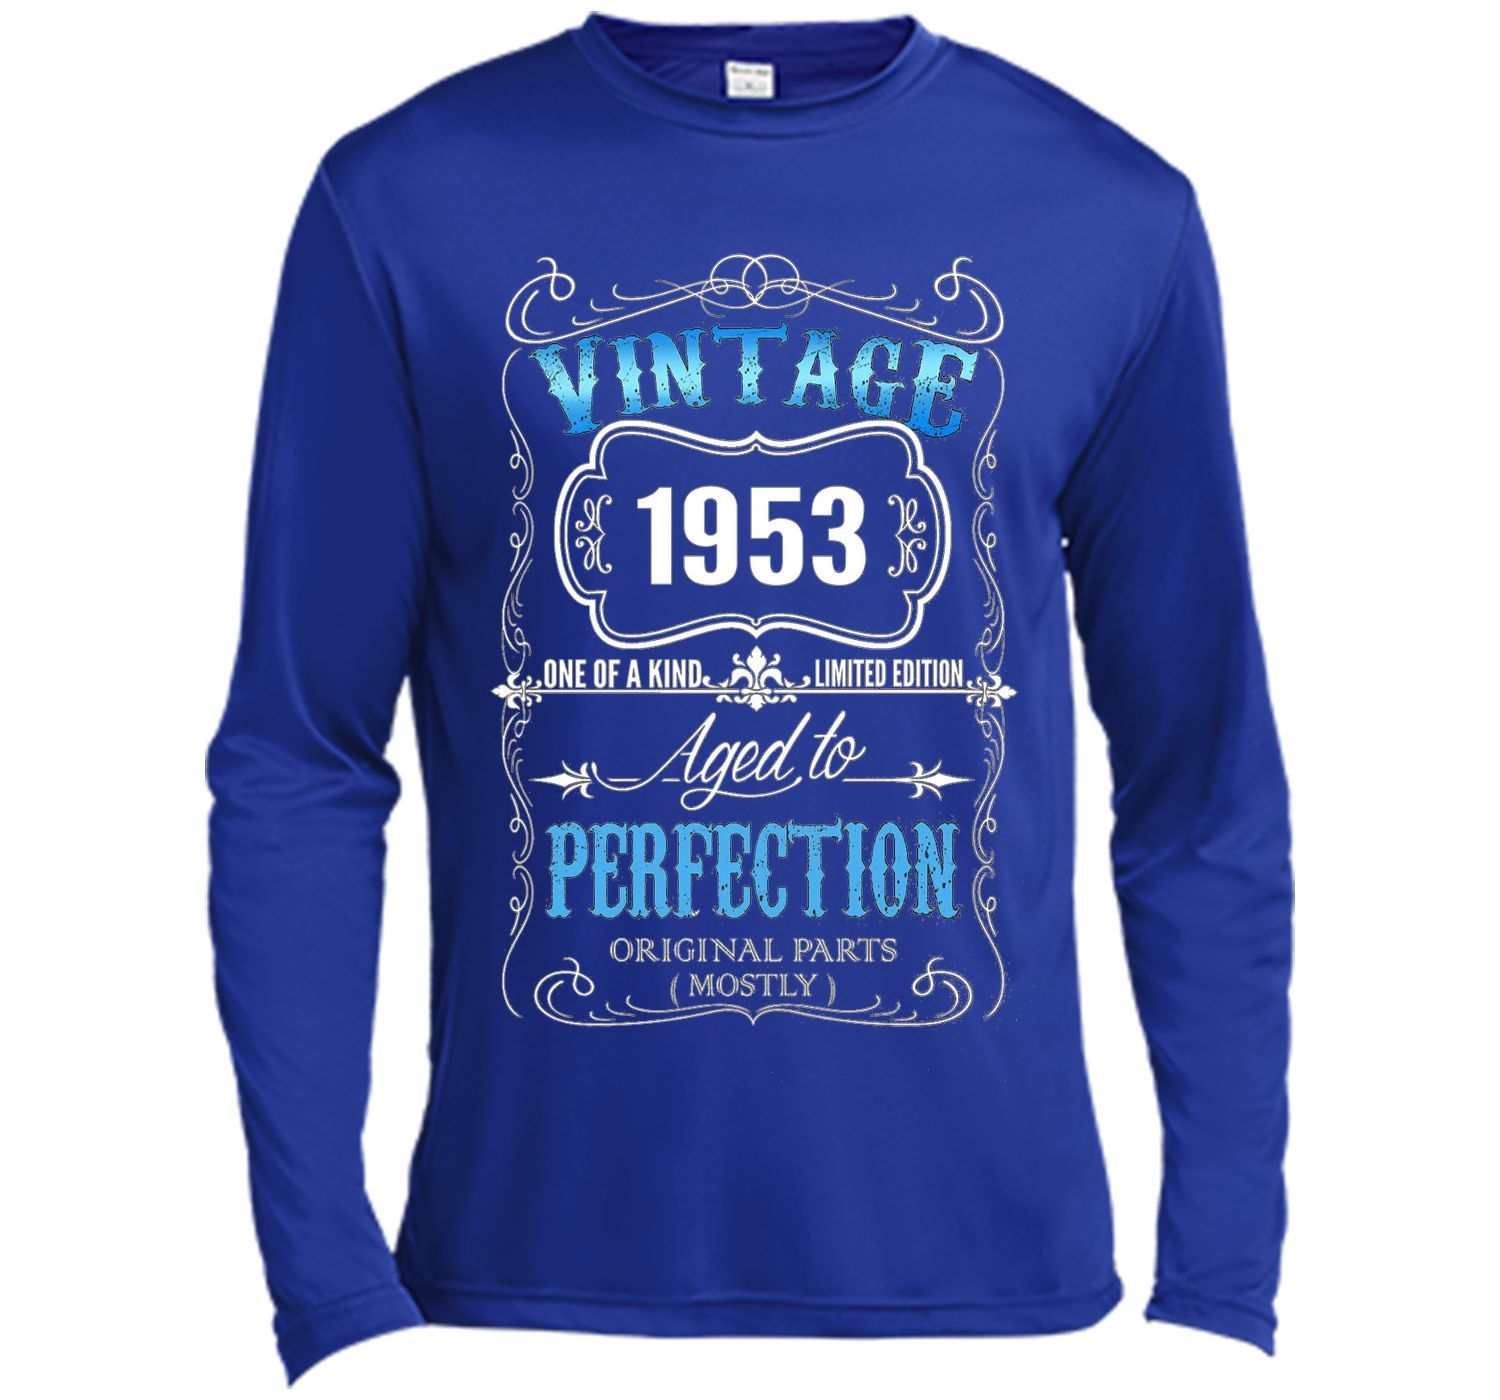 Vintage Born In 1953 Tshirt 64 Years Old Birthday